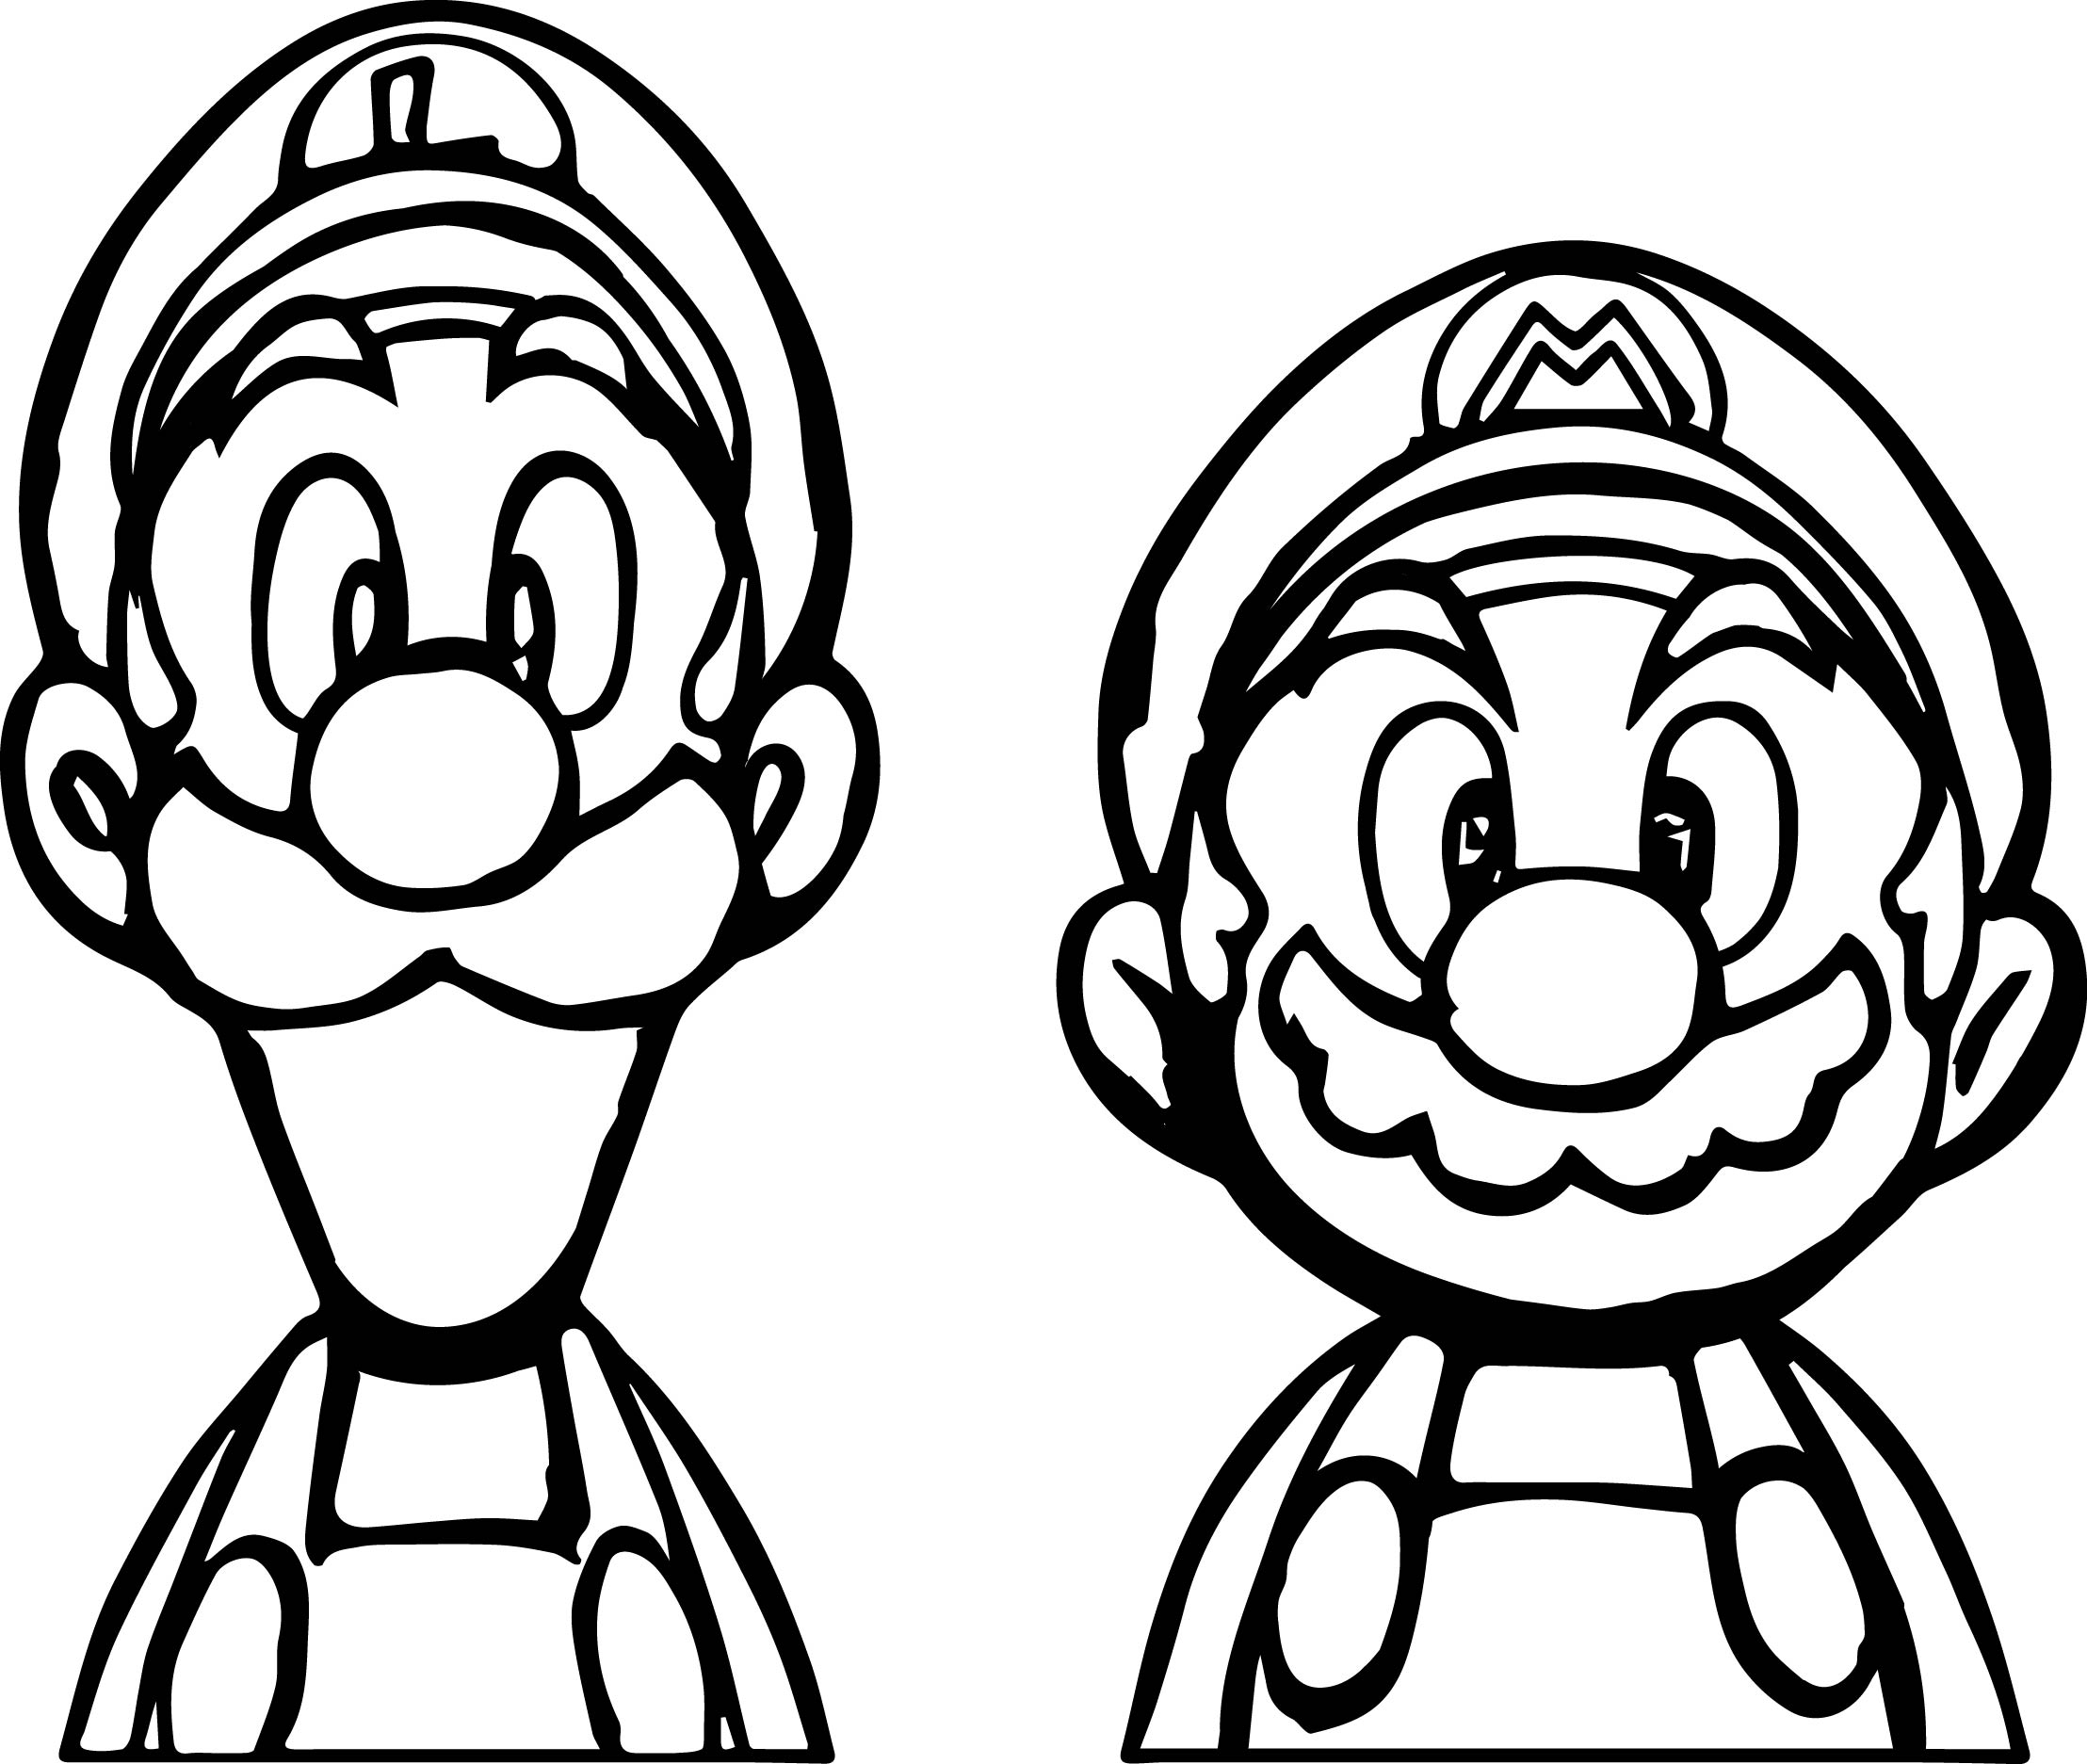 super mario world coloring pages super mario brothers colouring sheet for kids coloring world mario super pages coloring